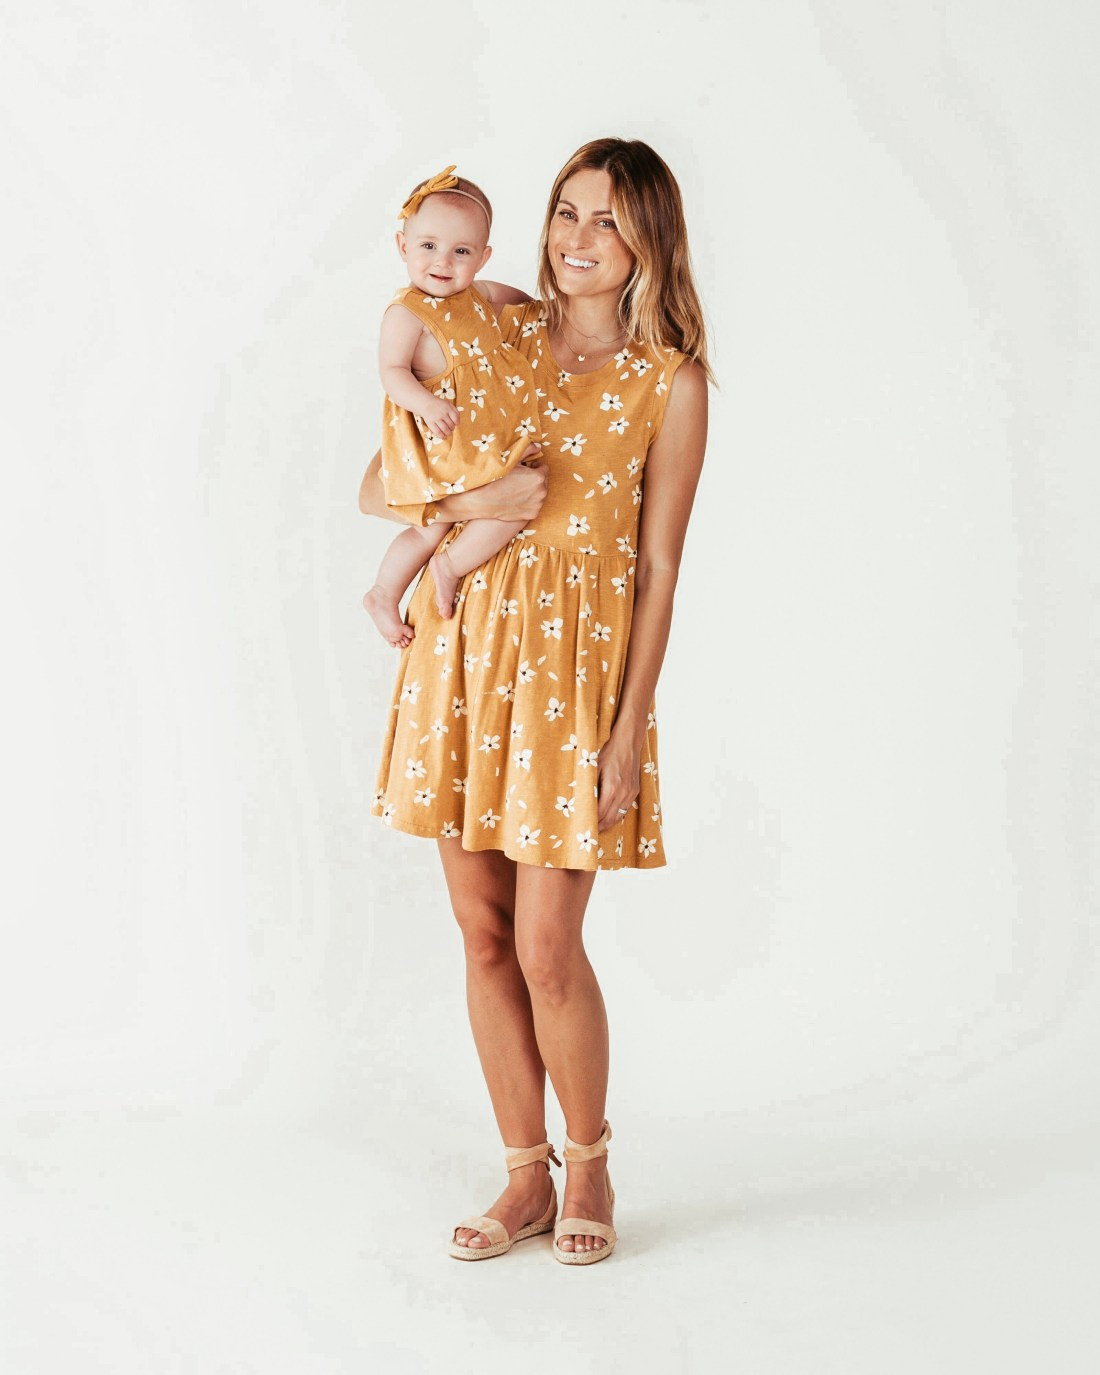 Anthropologie | Rylee and Cru Mommy + Me Outfits